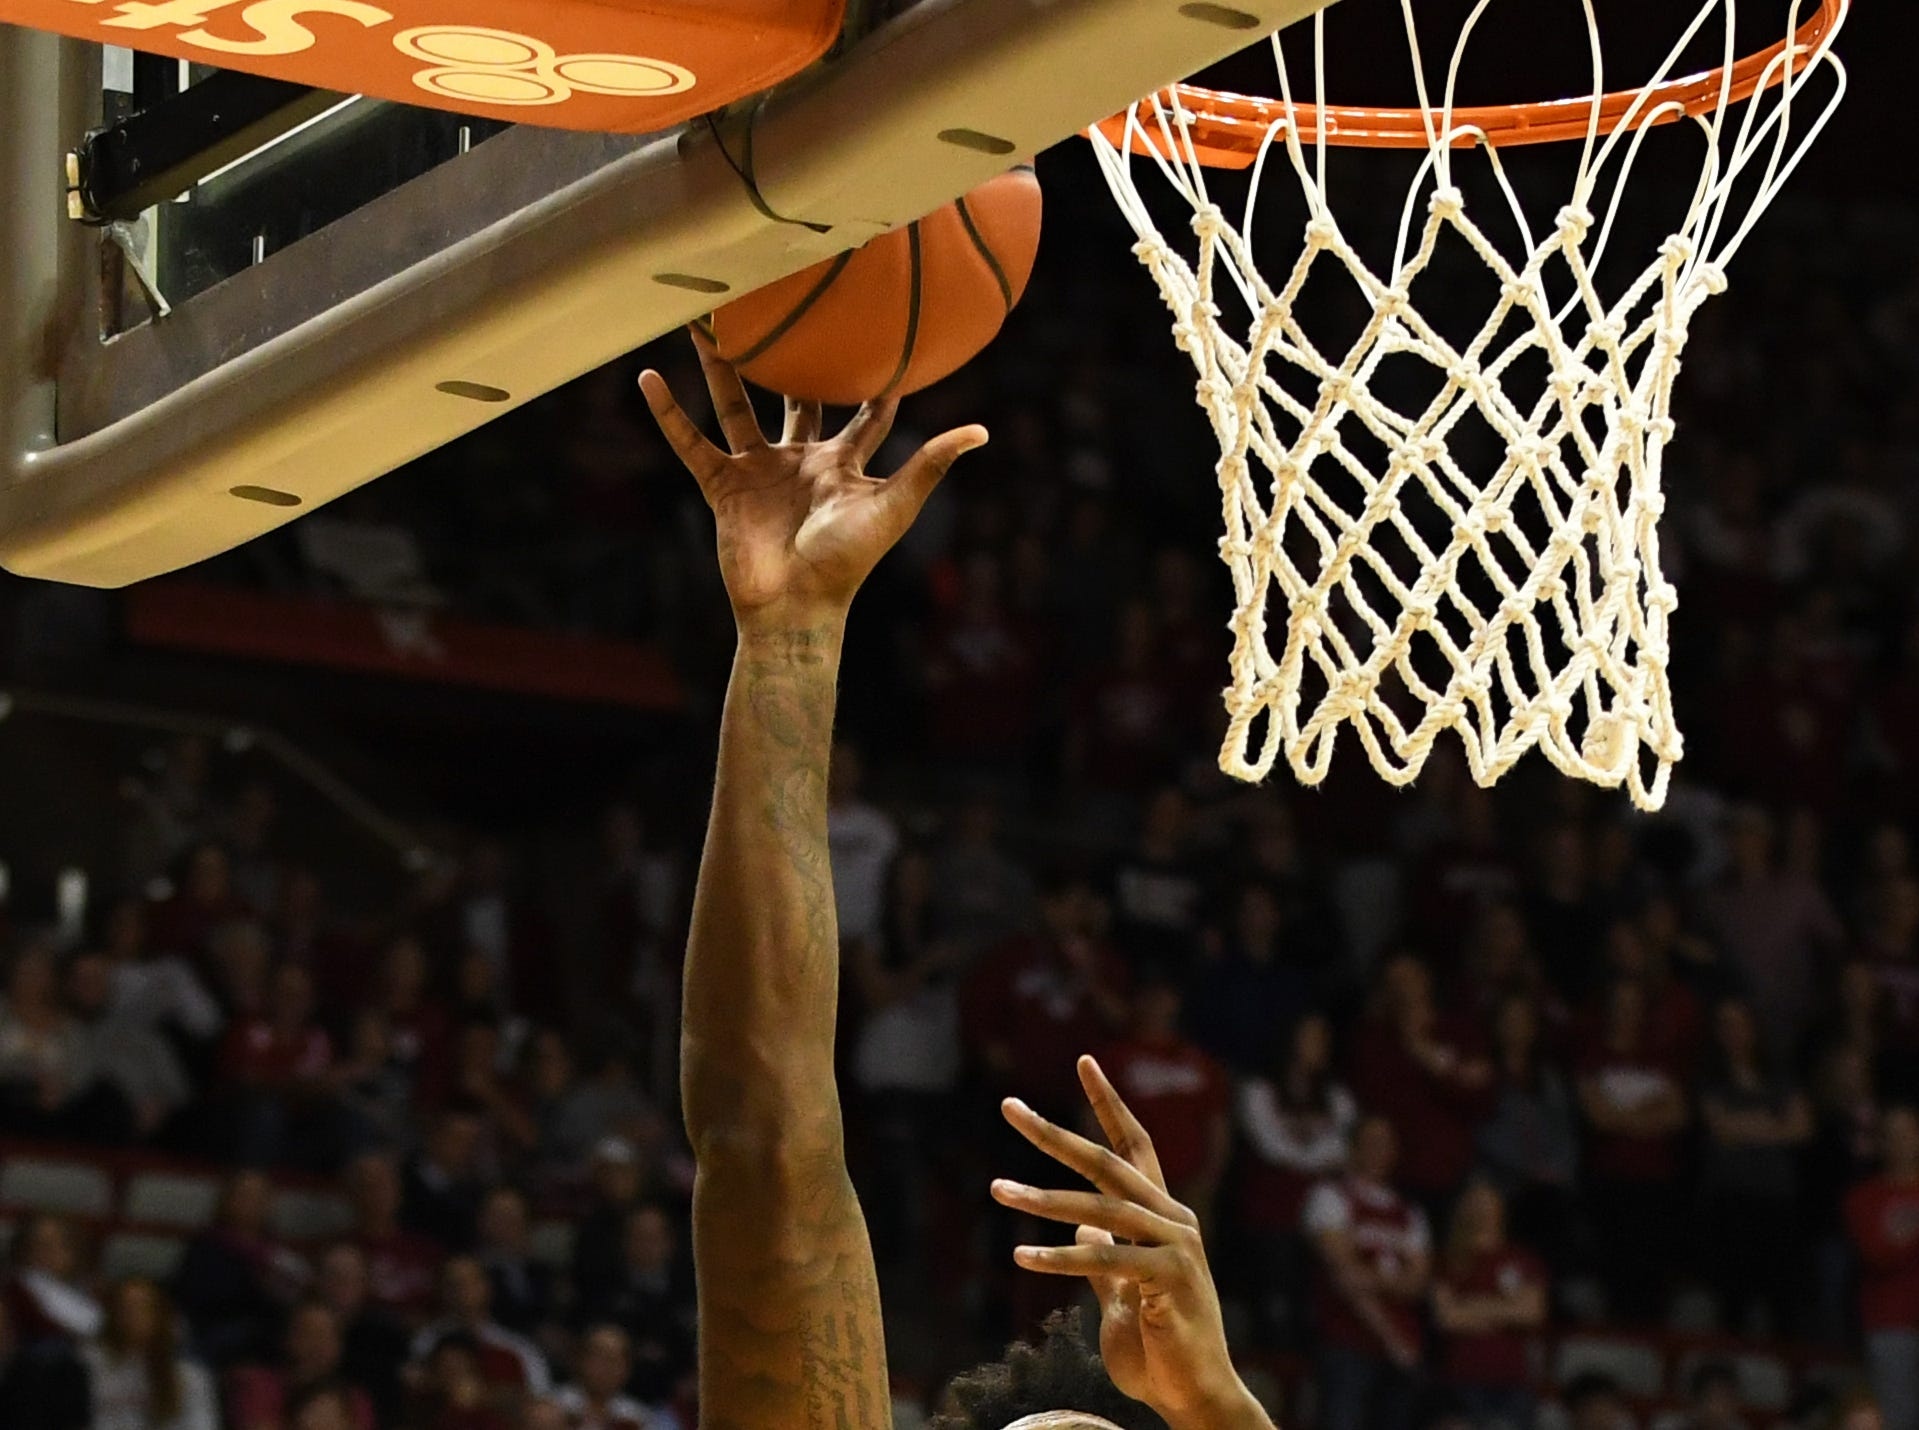 Indiana Hoosiers forward De'Ron Davis (20) makes a layup during the game against Montana State at Simon Skjodt Assembly Hall in Bloomington, Ind., on Friday, Nov. 9, 2018.